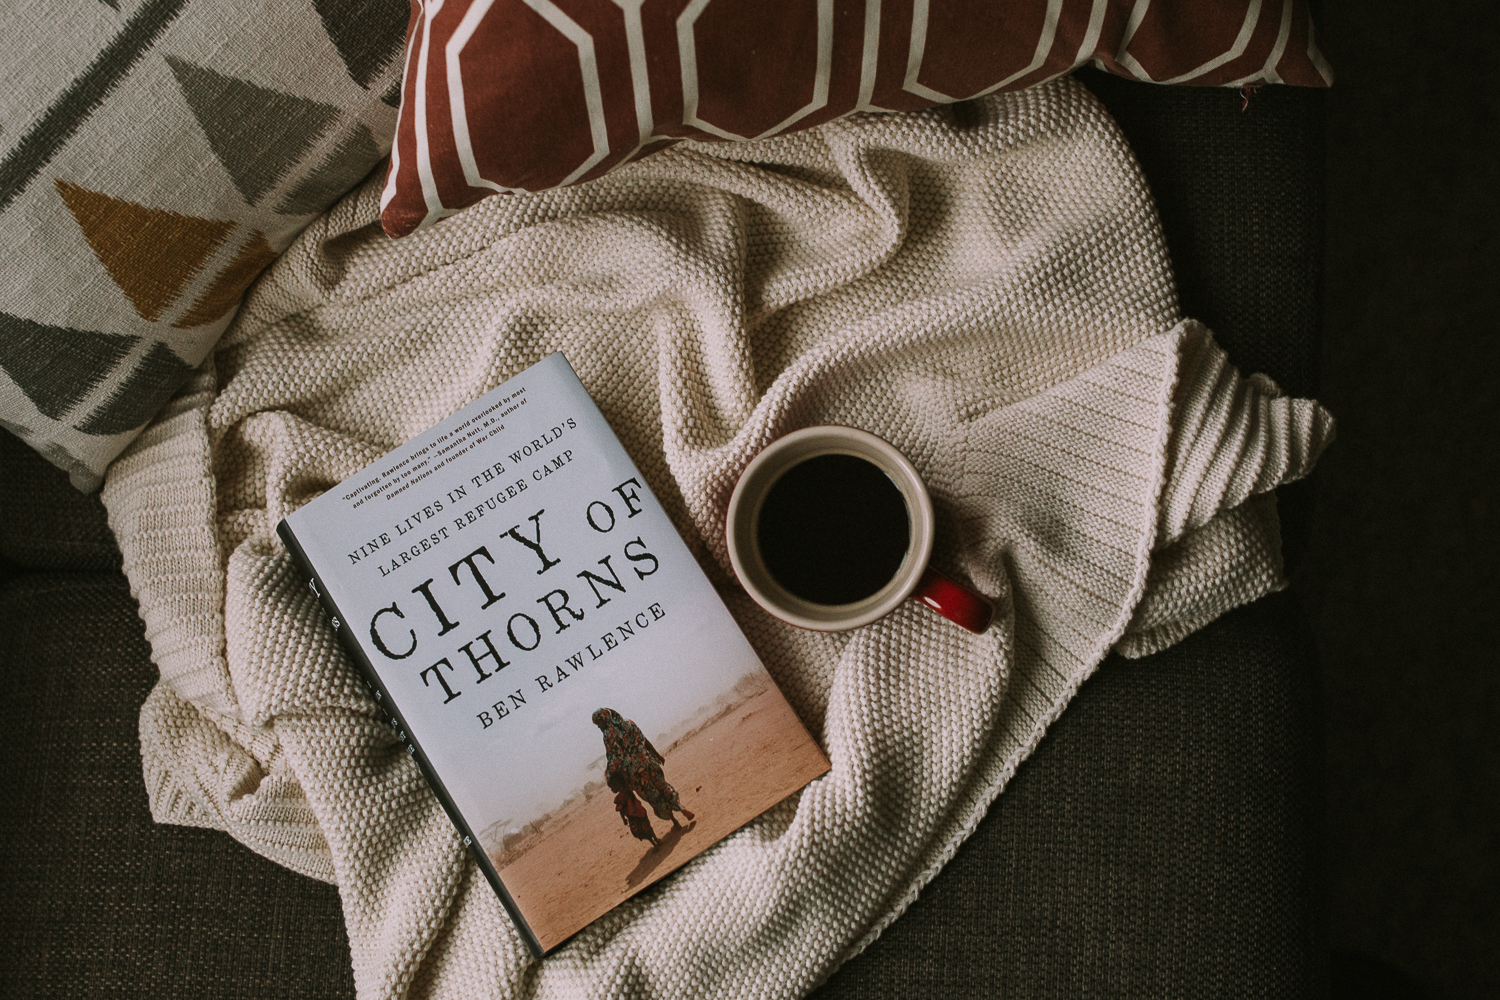 photo of book on cream knit blanket with mug of coffee - markham lifestyle photo